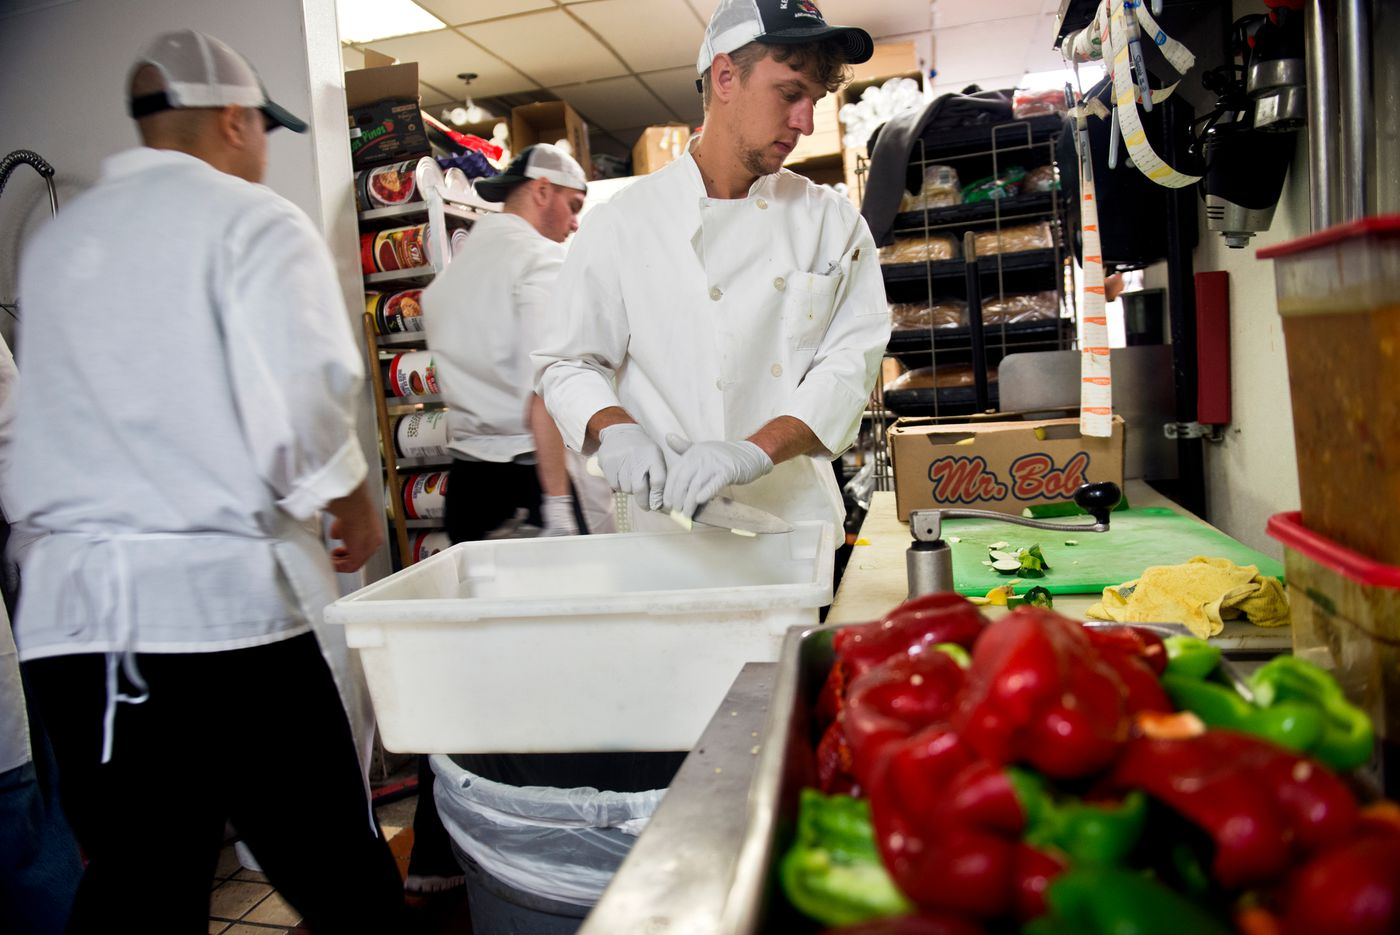 Milos Tatic, from Novi Sad, Serbia, cuts vegetables in the kitchen of Humpy's Alehouse. Tatic, in Anchorage on a J-1 visa program, said he also worked Pita Pit and gave private tennis lessons, a schedule that totaled 85-90 hours a week. (Marc Lester / Alaska Dispatch News)